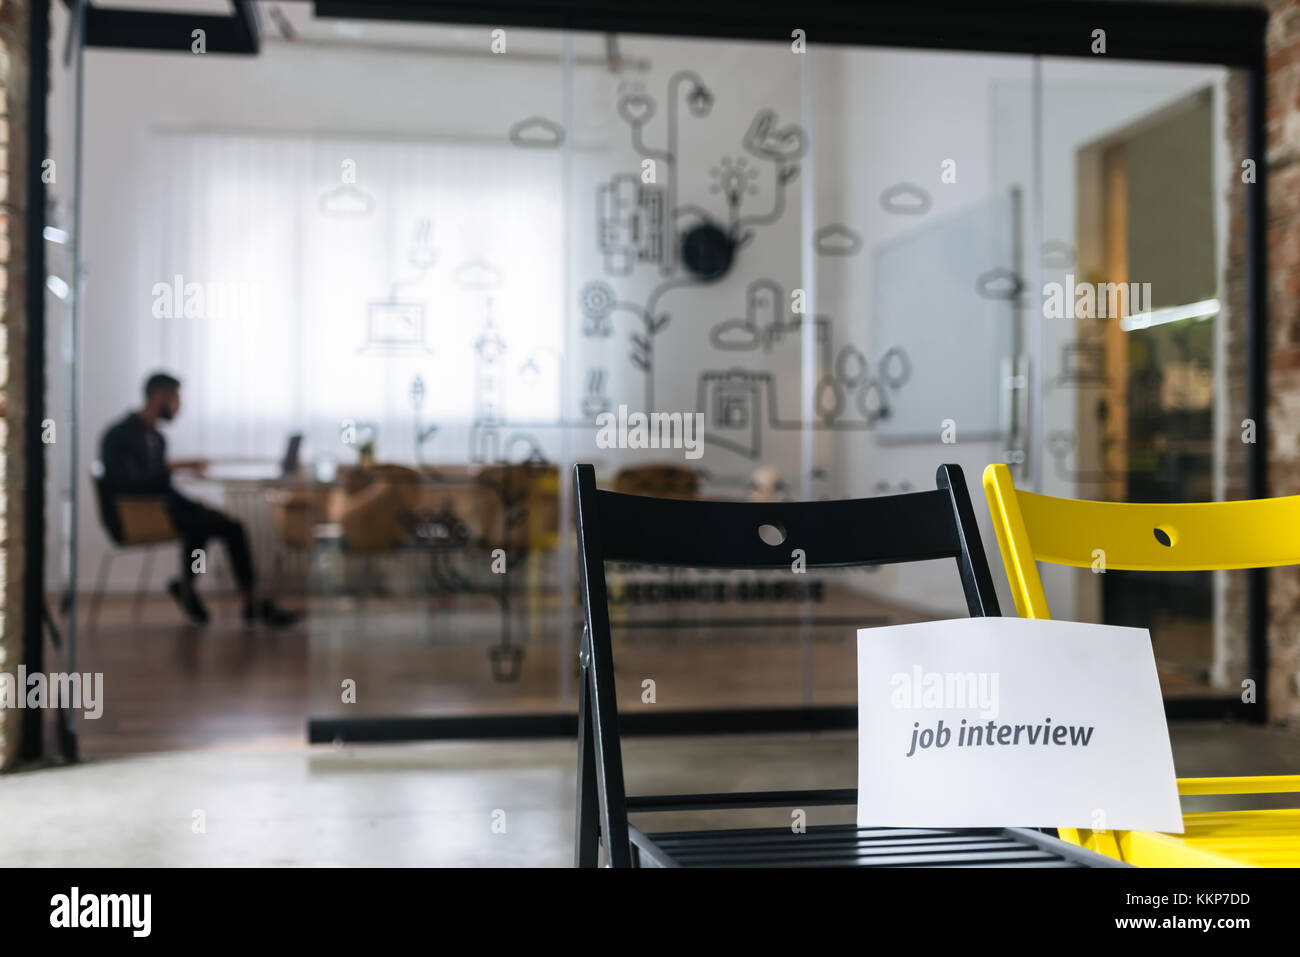 Job recruiter waiting for candidates - Stock Image